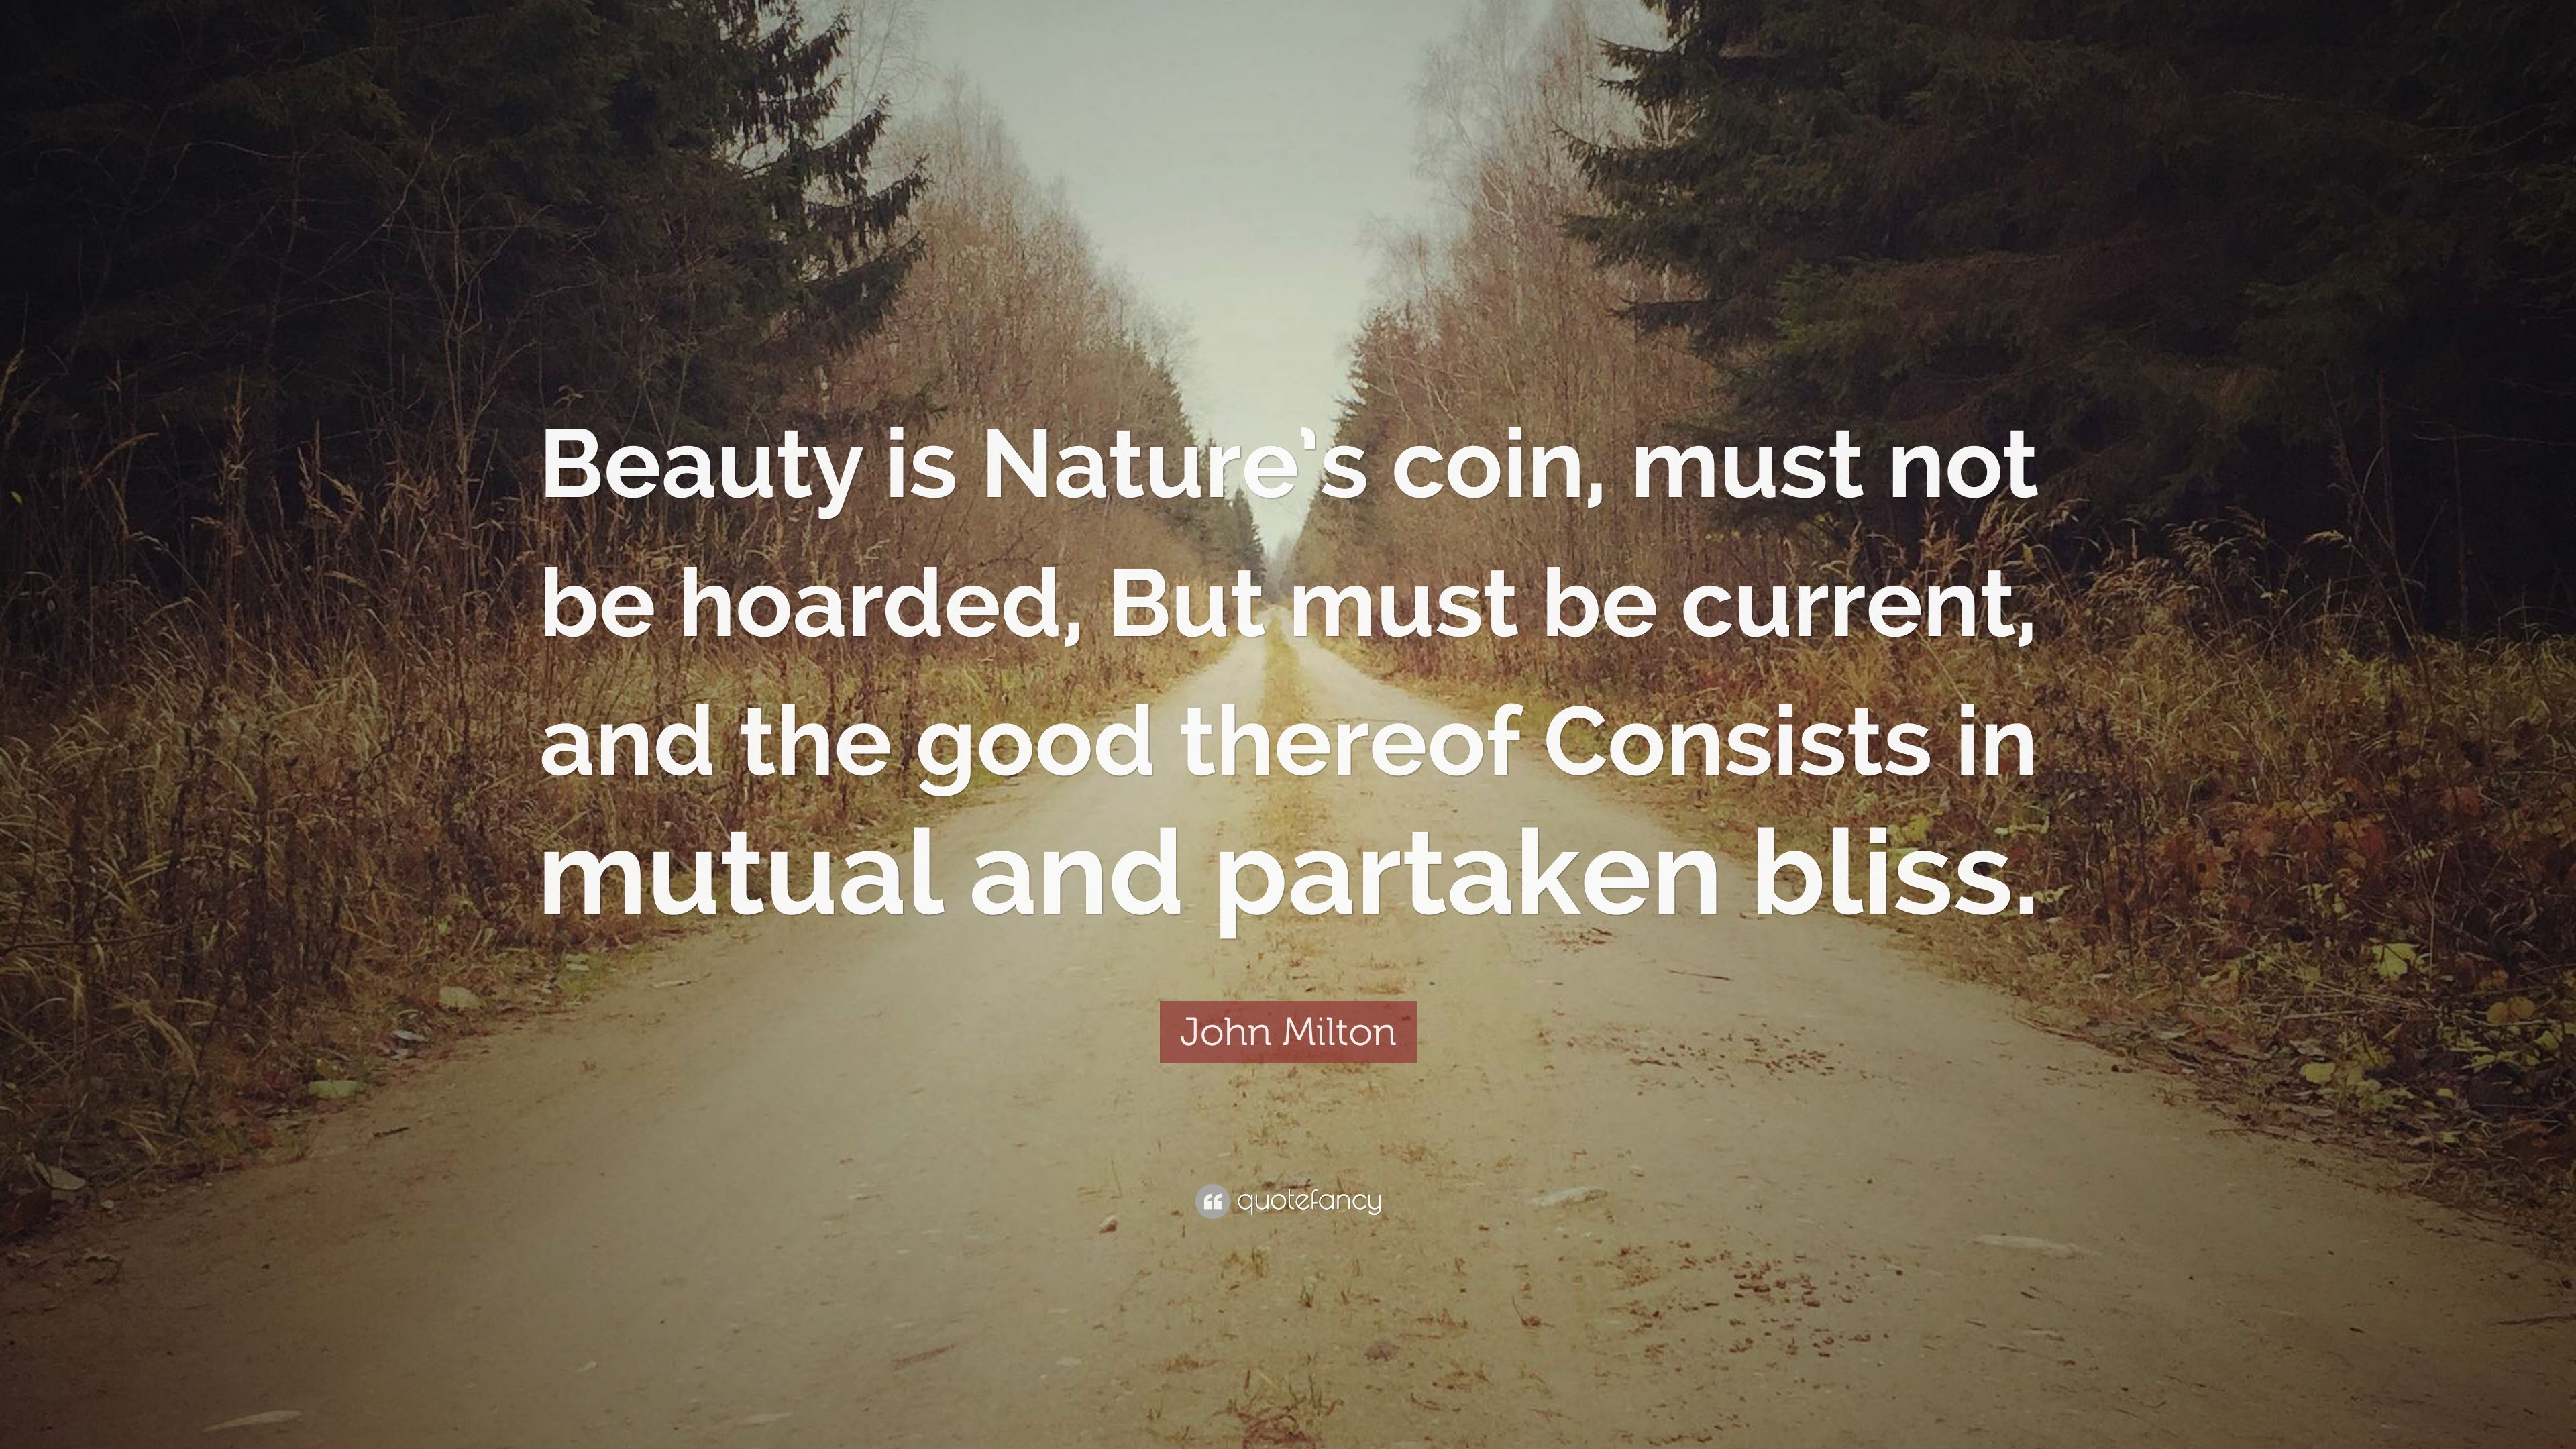 John Milton Quote Beauty Is Nature S Coin Must Not Be Hoarded But Must Be Current And The Good Thereof Consists In Mutual And Partaken 10 Wallpapers Quotefancy